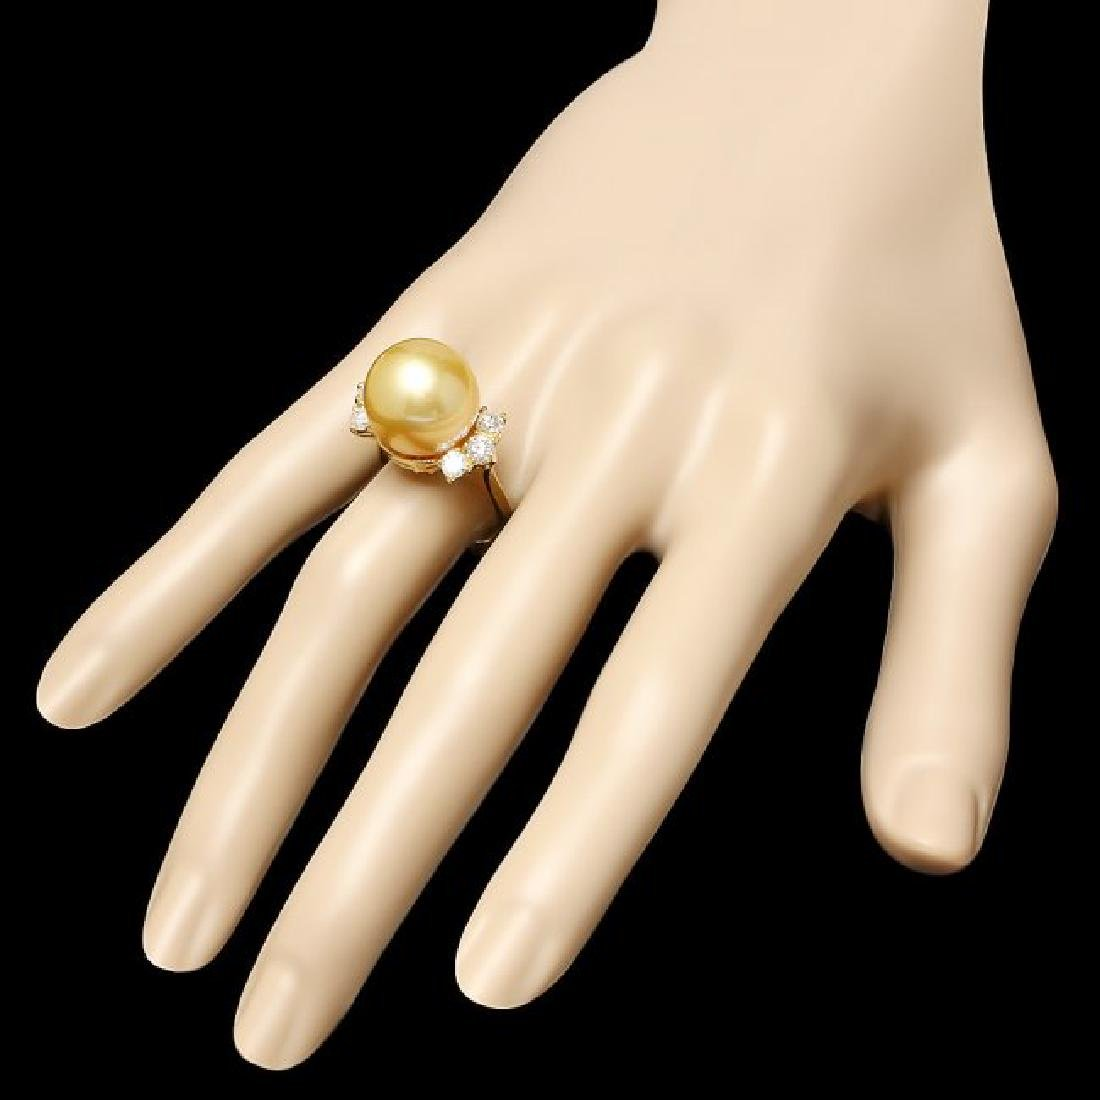 14k Gold 14 X 14mm Pearl 0.80ct Diamond Ring - 3